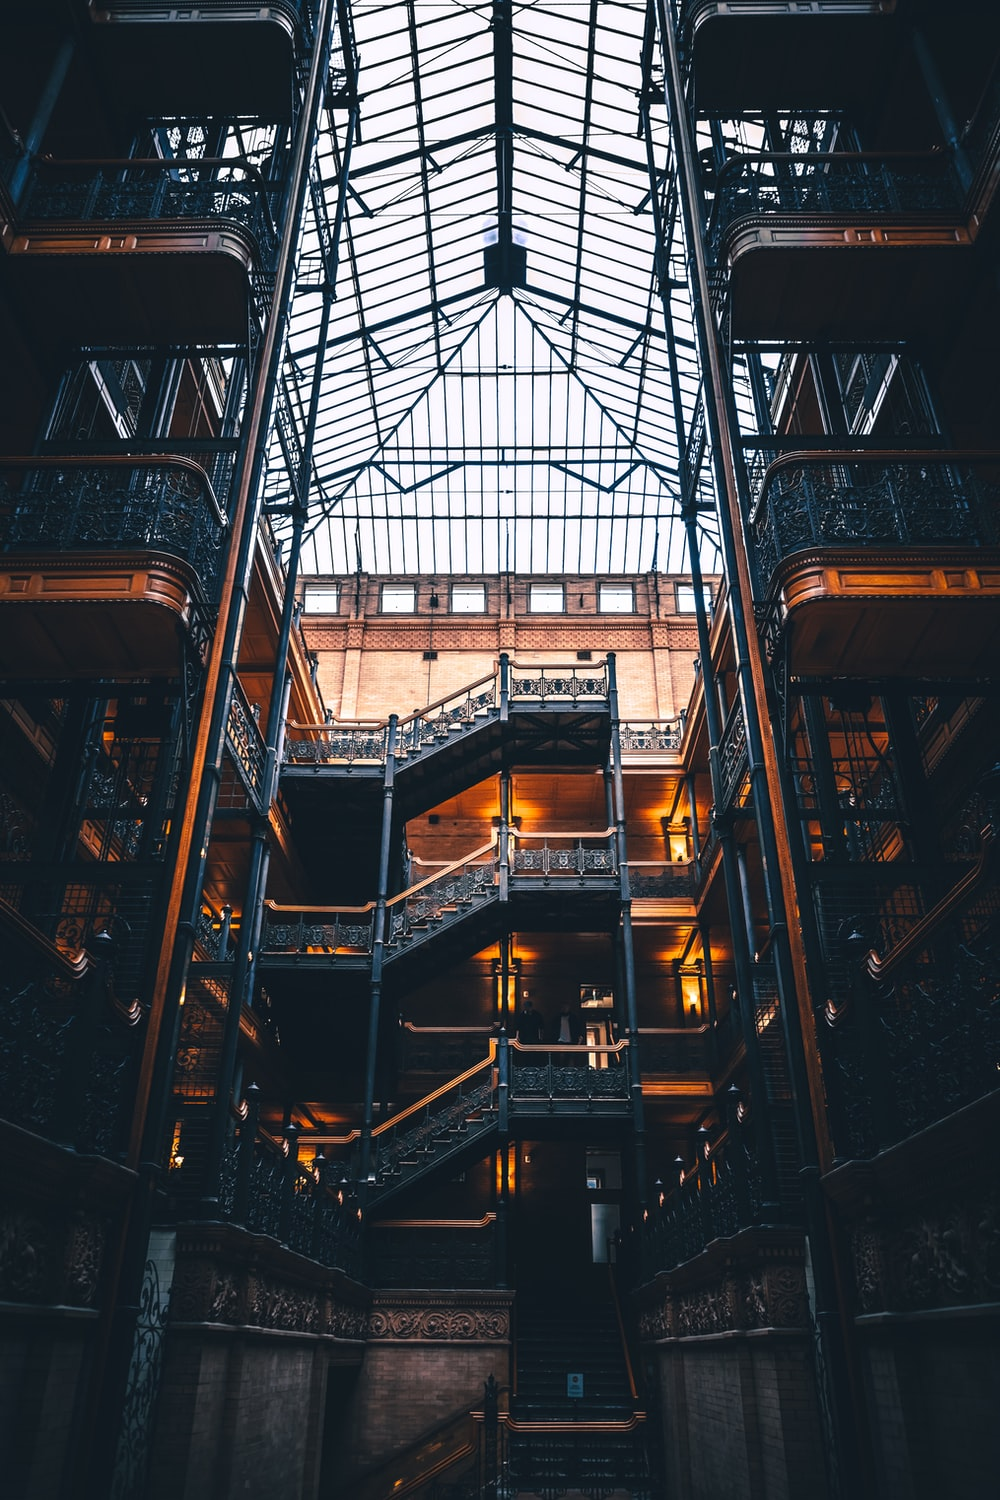 The Bradbury Building Pictures | Download Free Images on